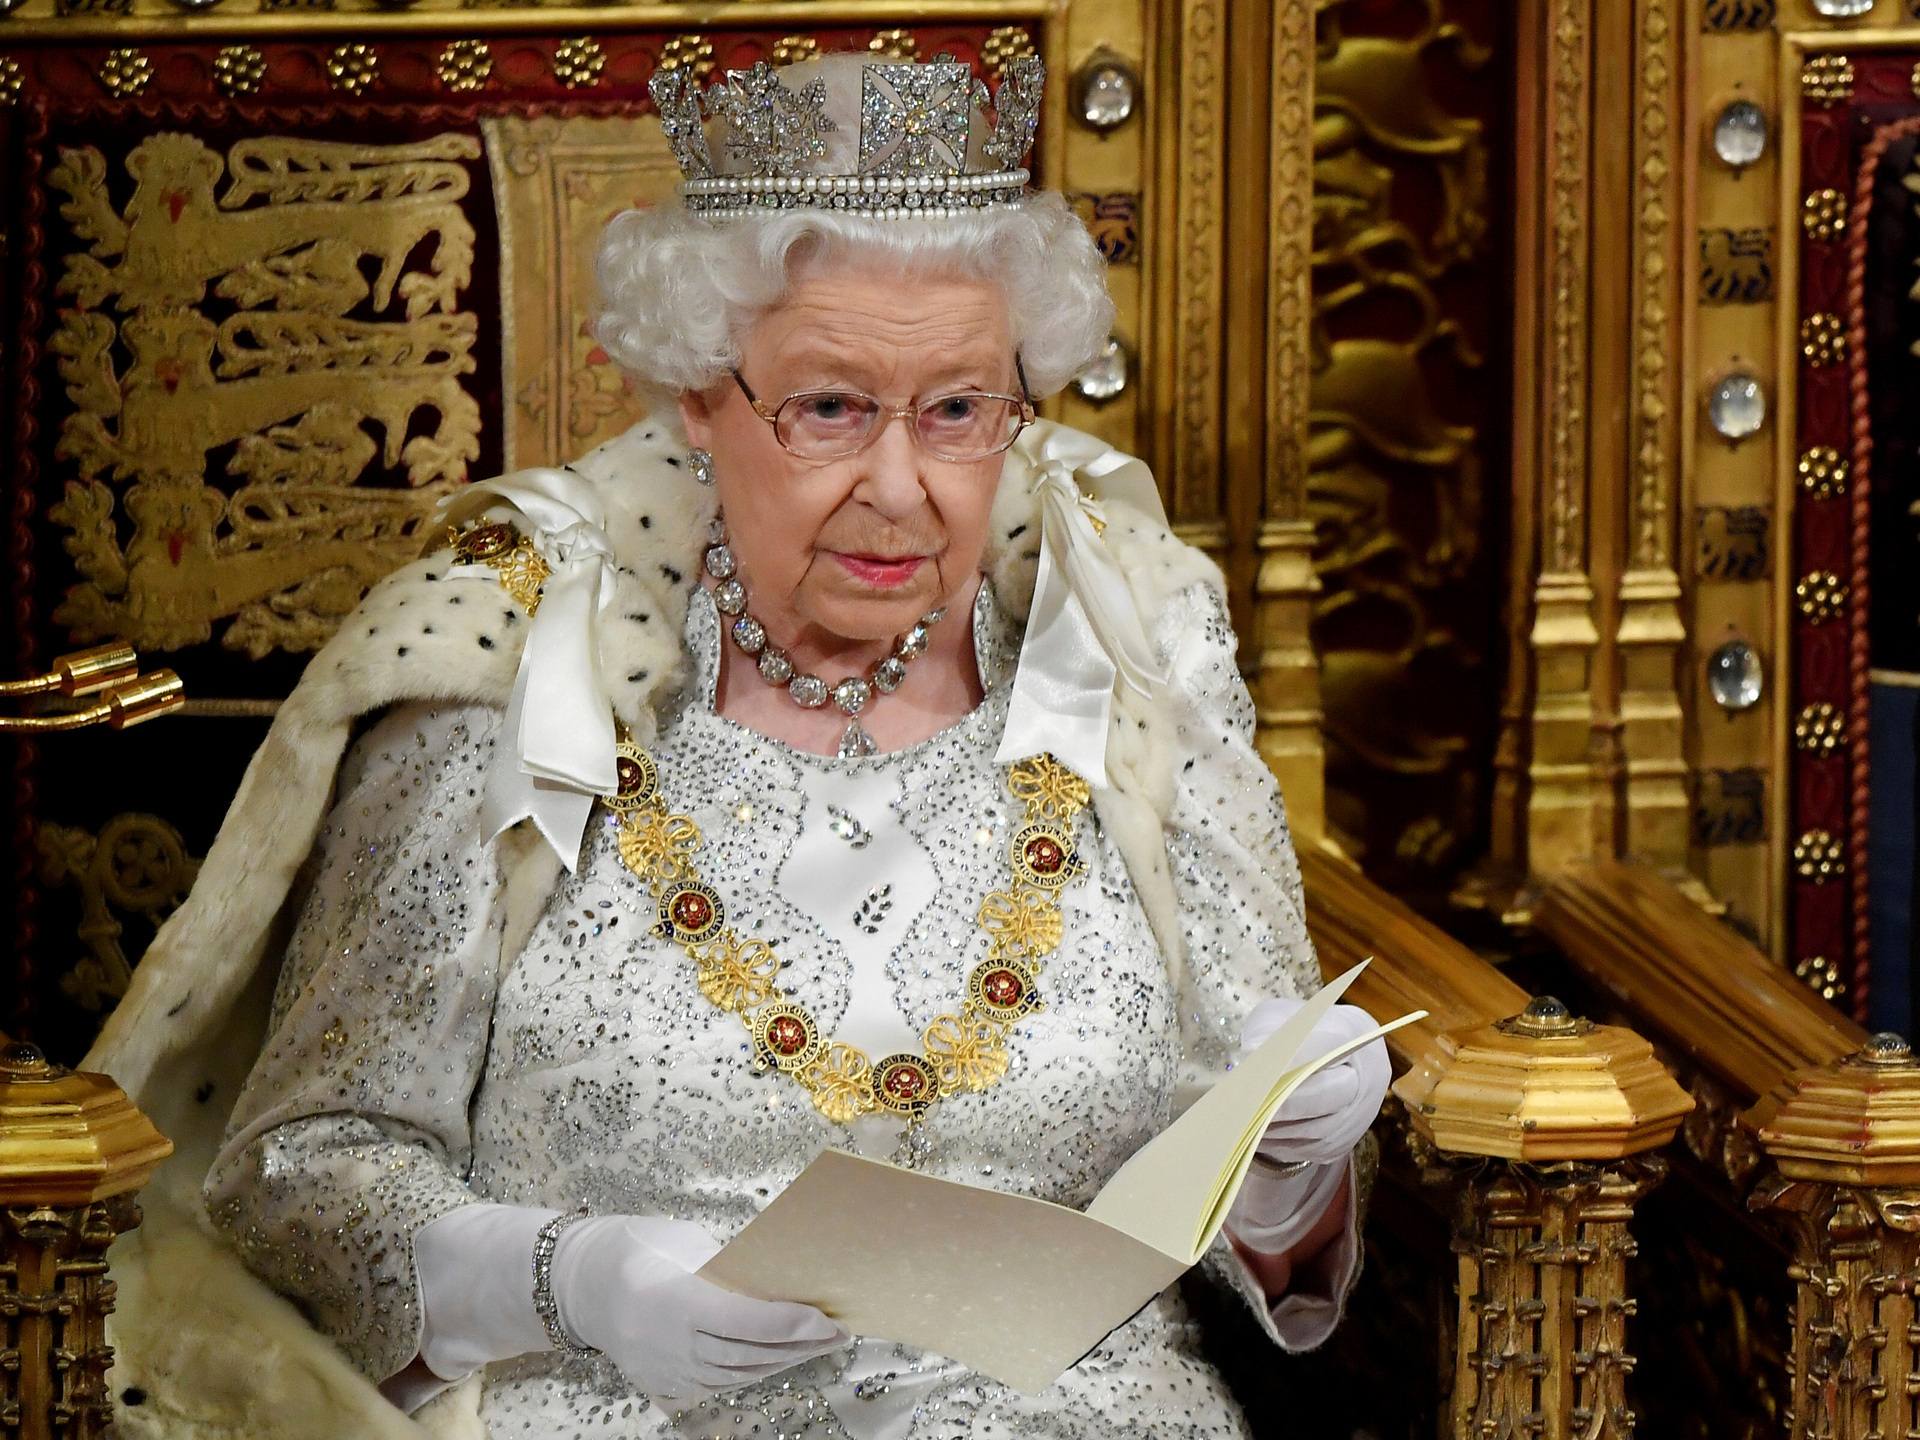 Queen wants a new butler - but will pay below living wage